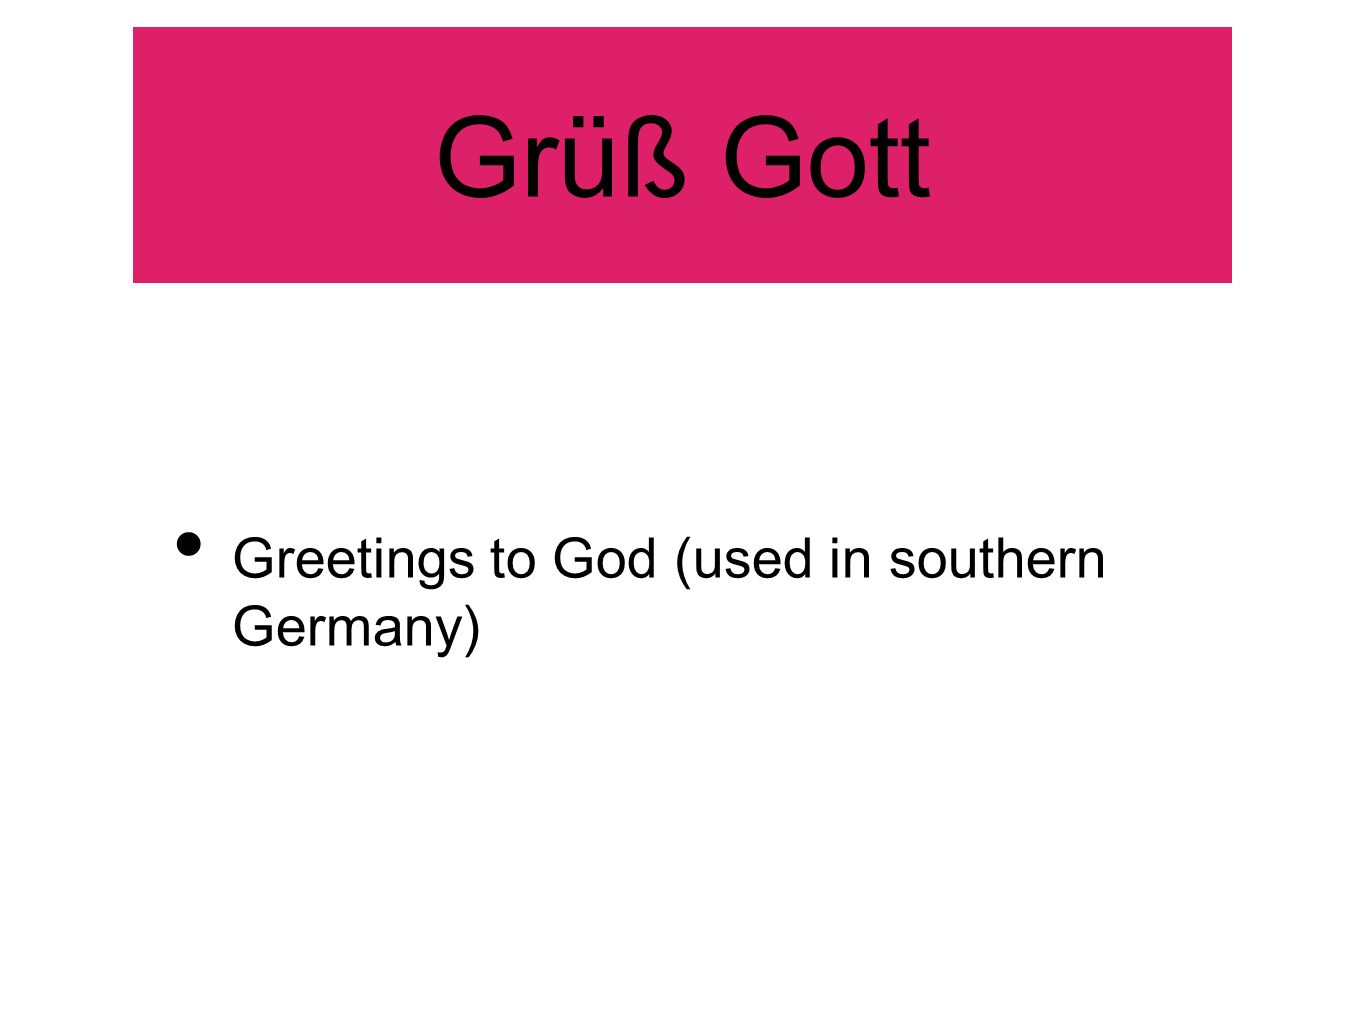 Grüß Gott Greetings to God (used in southern Germany)